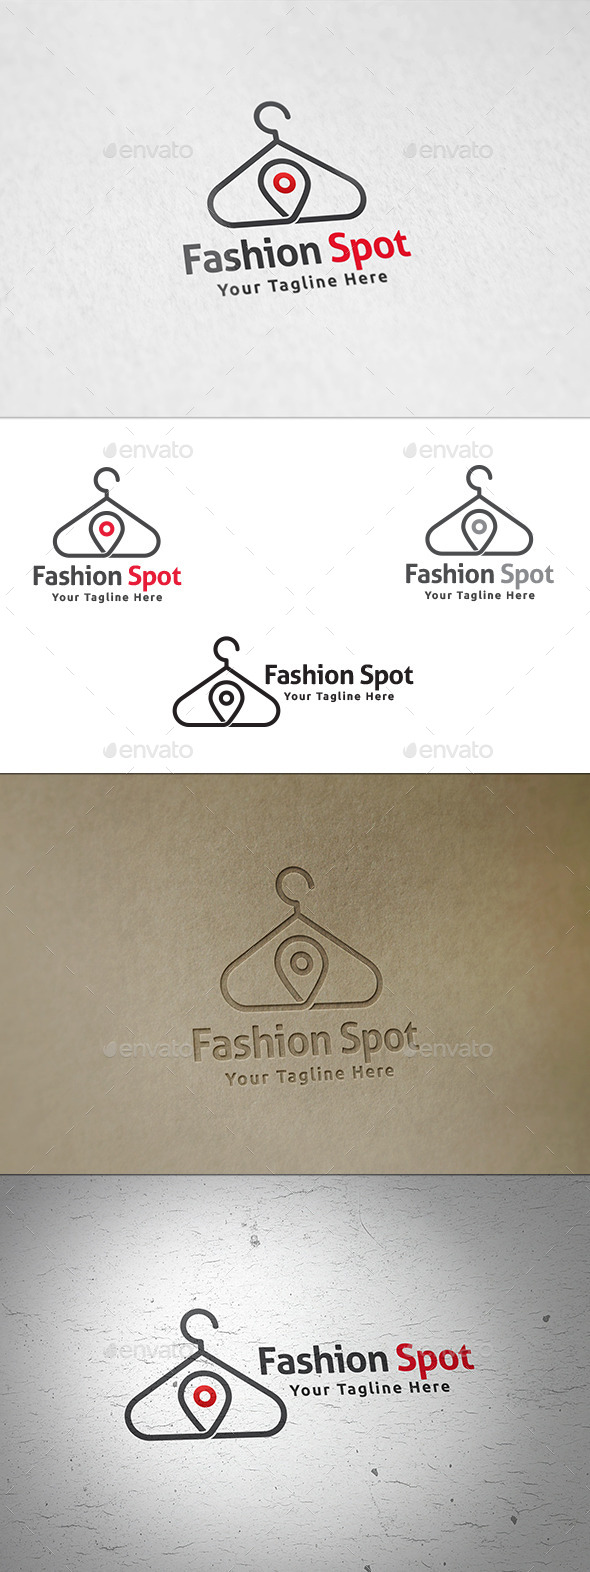 GraphicRiver Fashion Spot logo Template 11294978